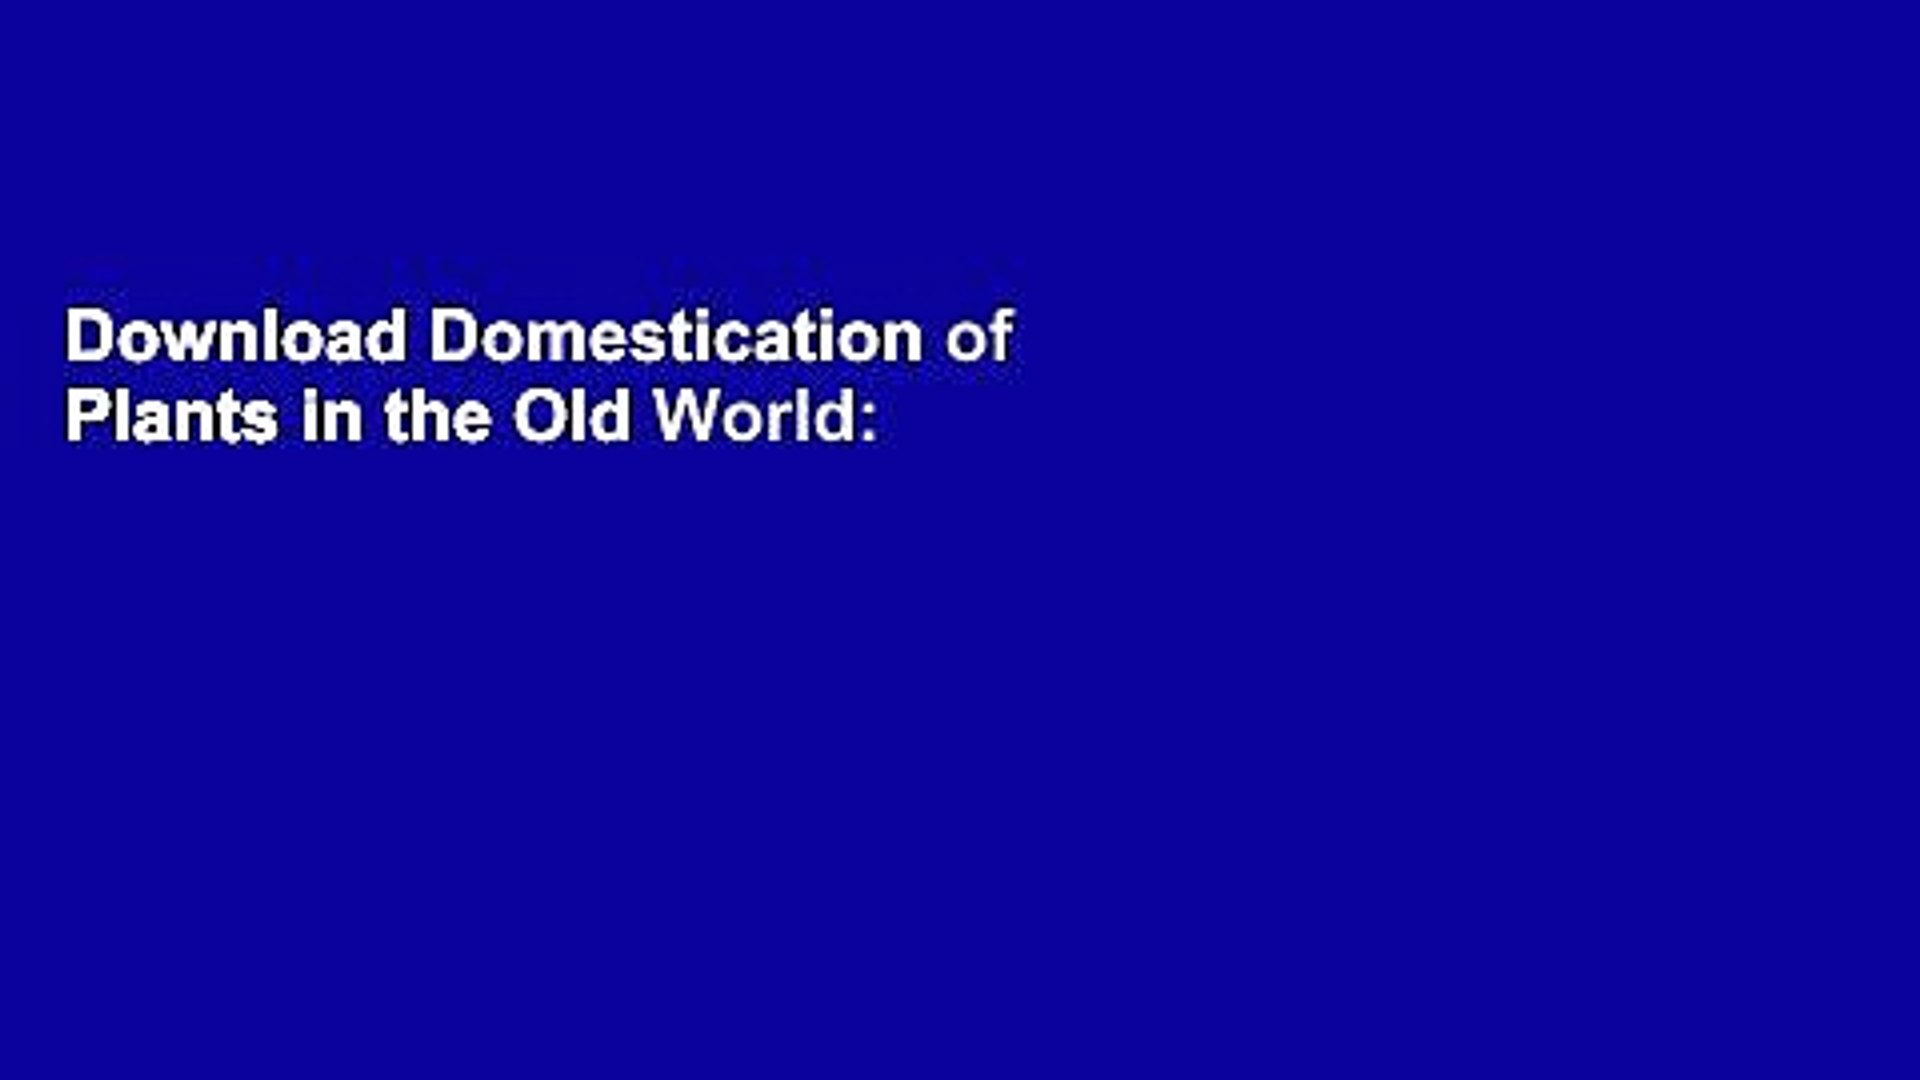 Download Domestication of Plants in the Old World: The origin and spread of  domesticated plants in